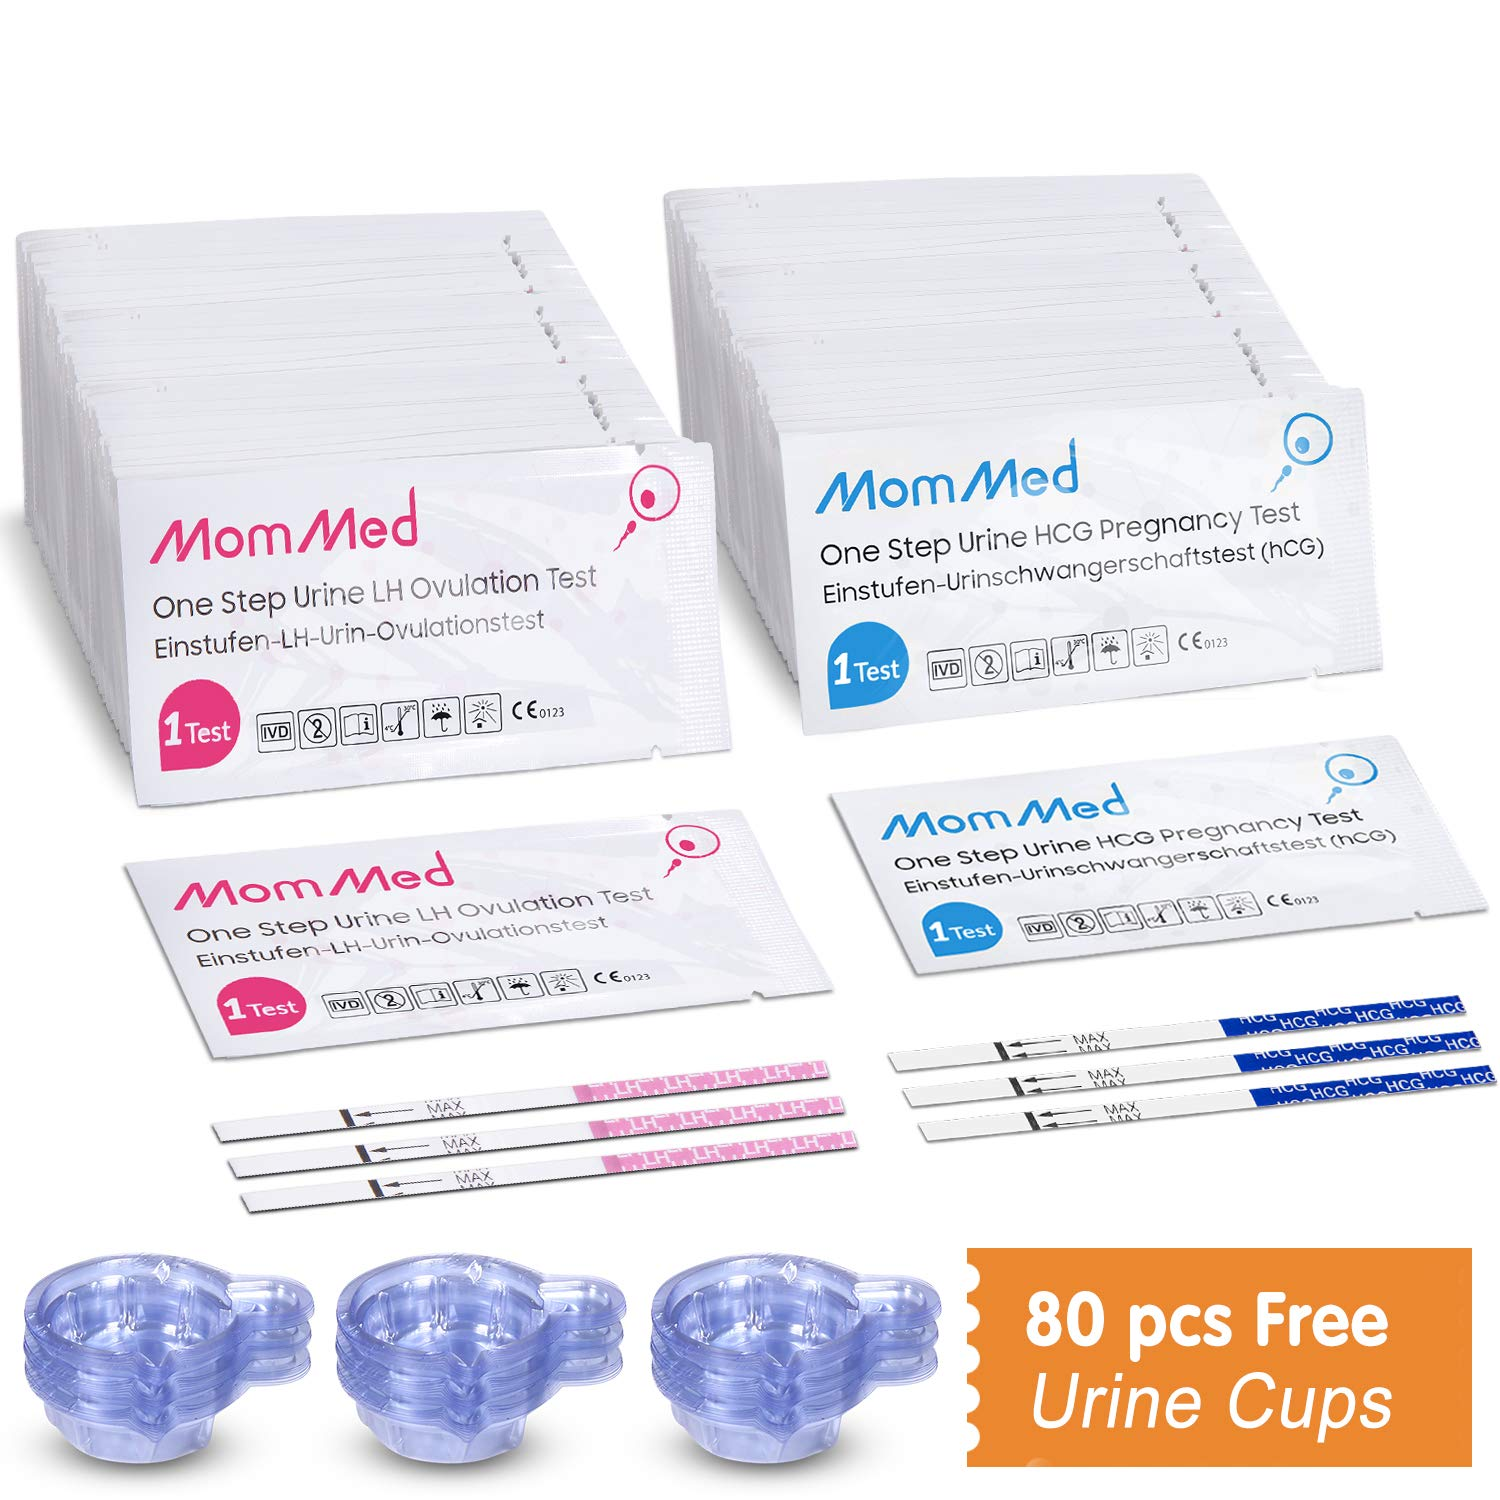 Ovulation and Pregnancy Test Strips, LH and HCG Fertility Test for Women, Includes 20 Pregnancy Tests, 60 Ovulation Test Strips, 80 Urine Cups, Time Tracking Chart, Rapid and Accurate Results by MOMMED